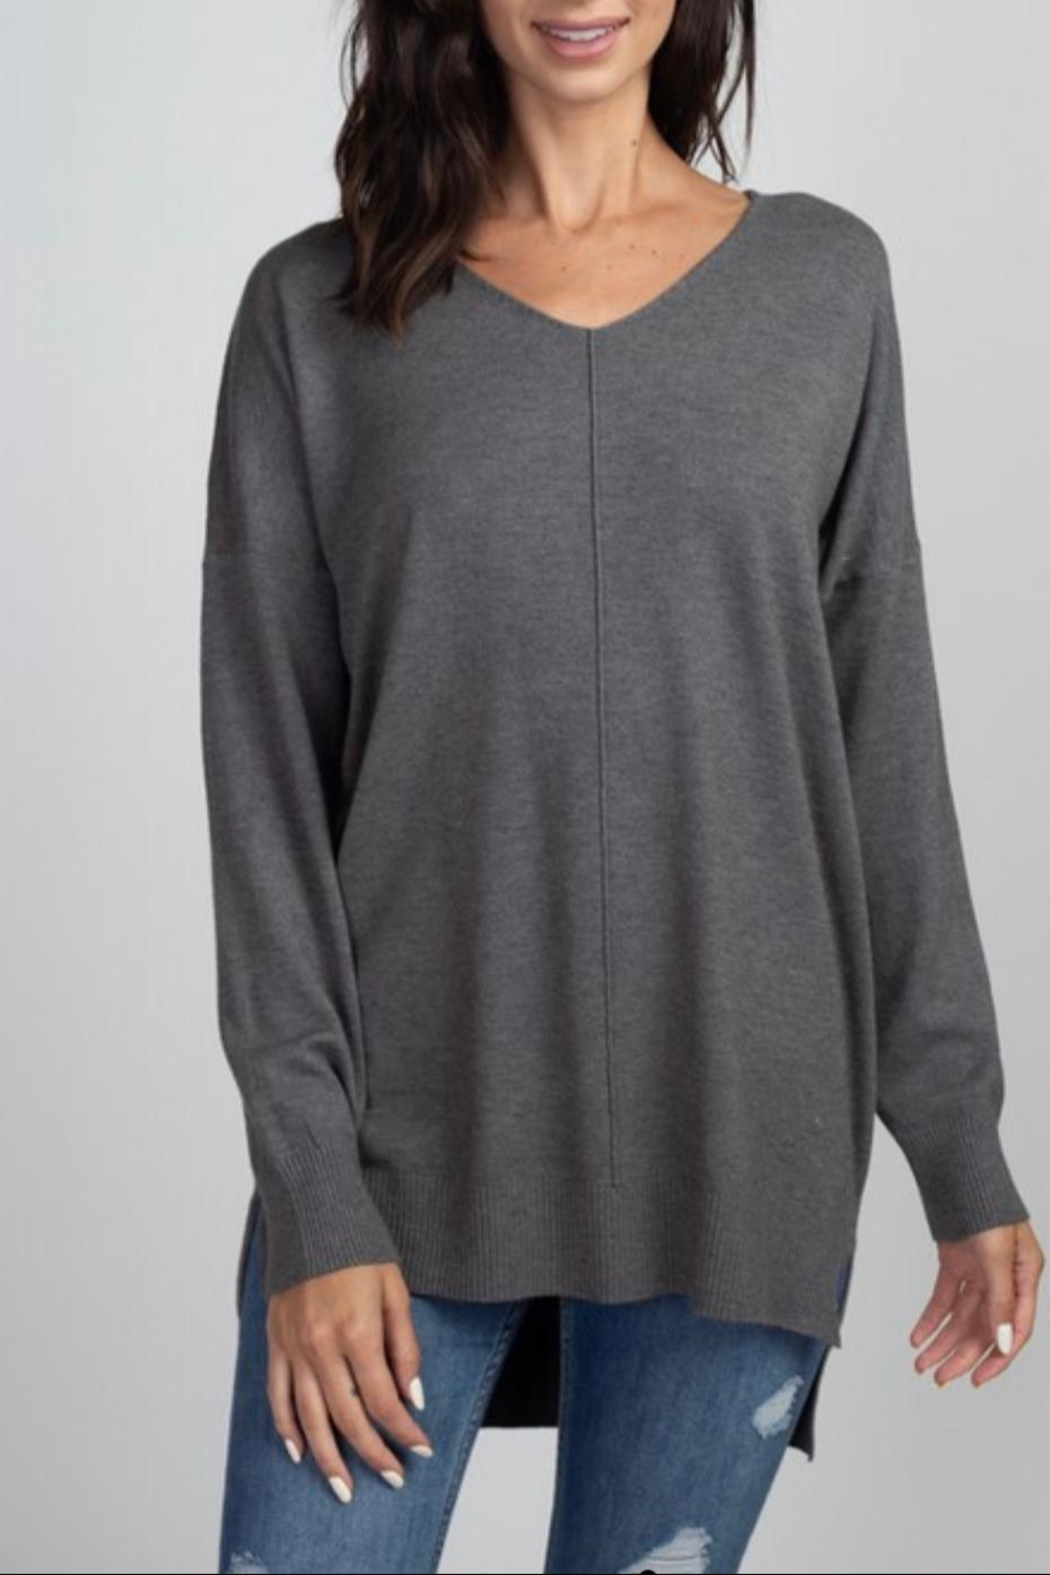 Dreamers Charcoal Soft Sweater - Main Image